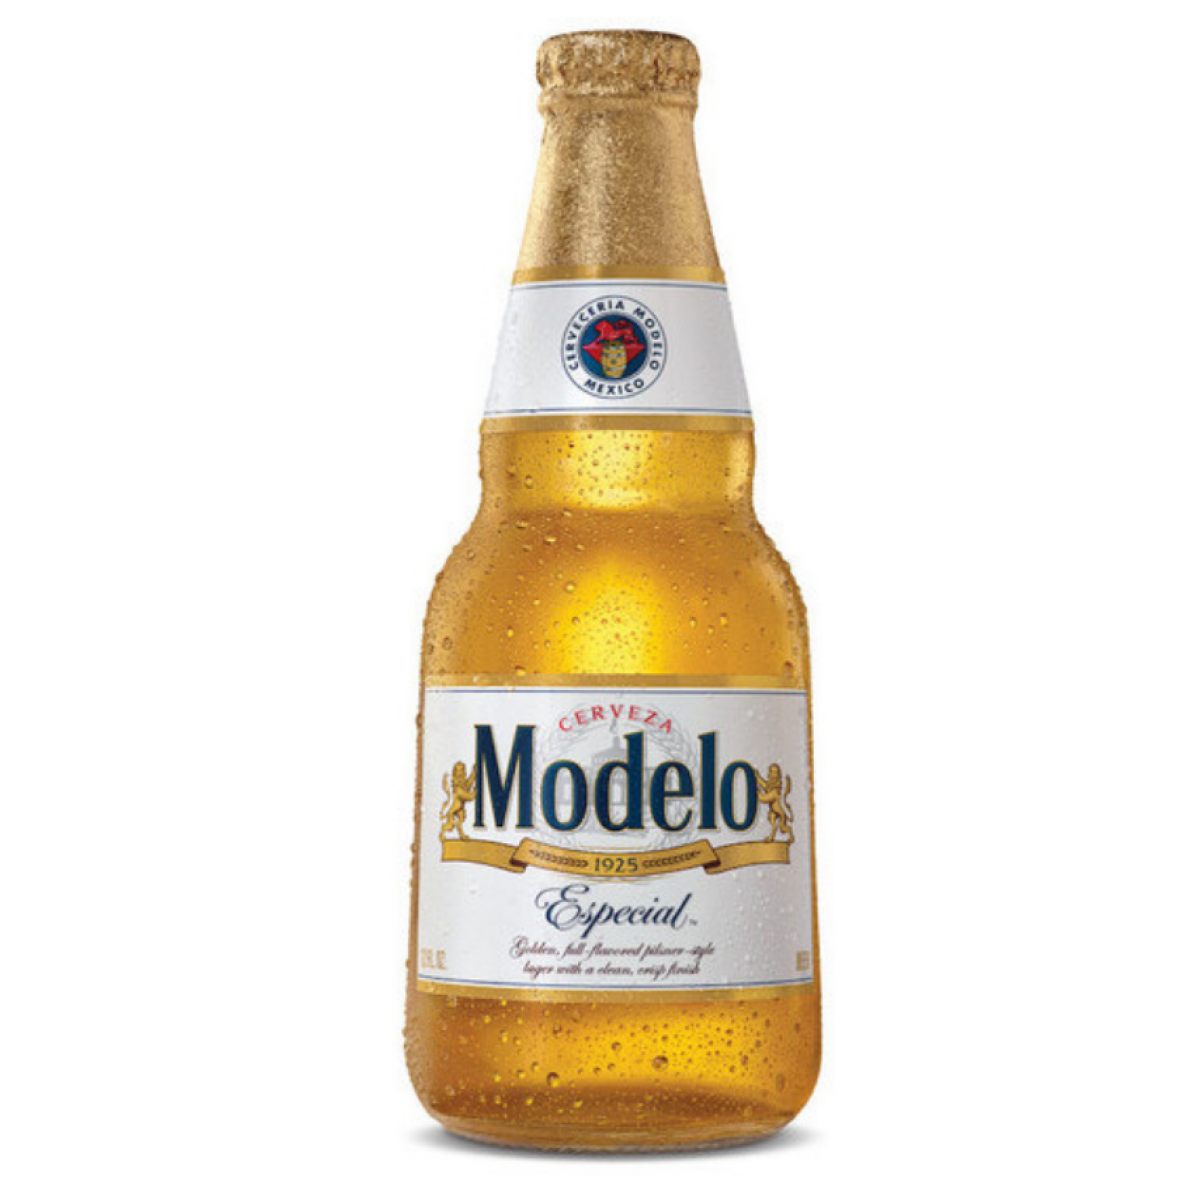 Modelo Especial Mexican Lager Beer Bottles - Maxwell's Clarkston